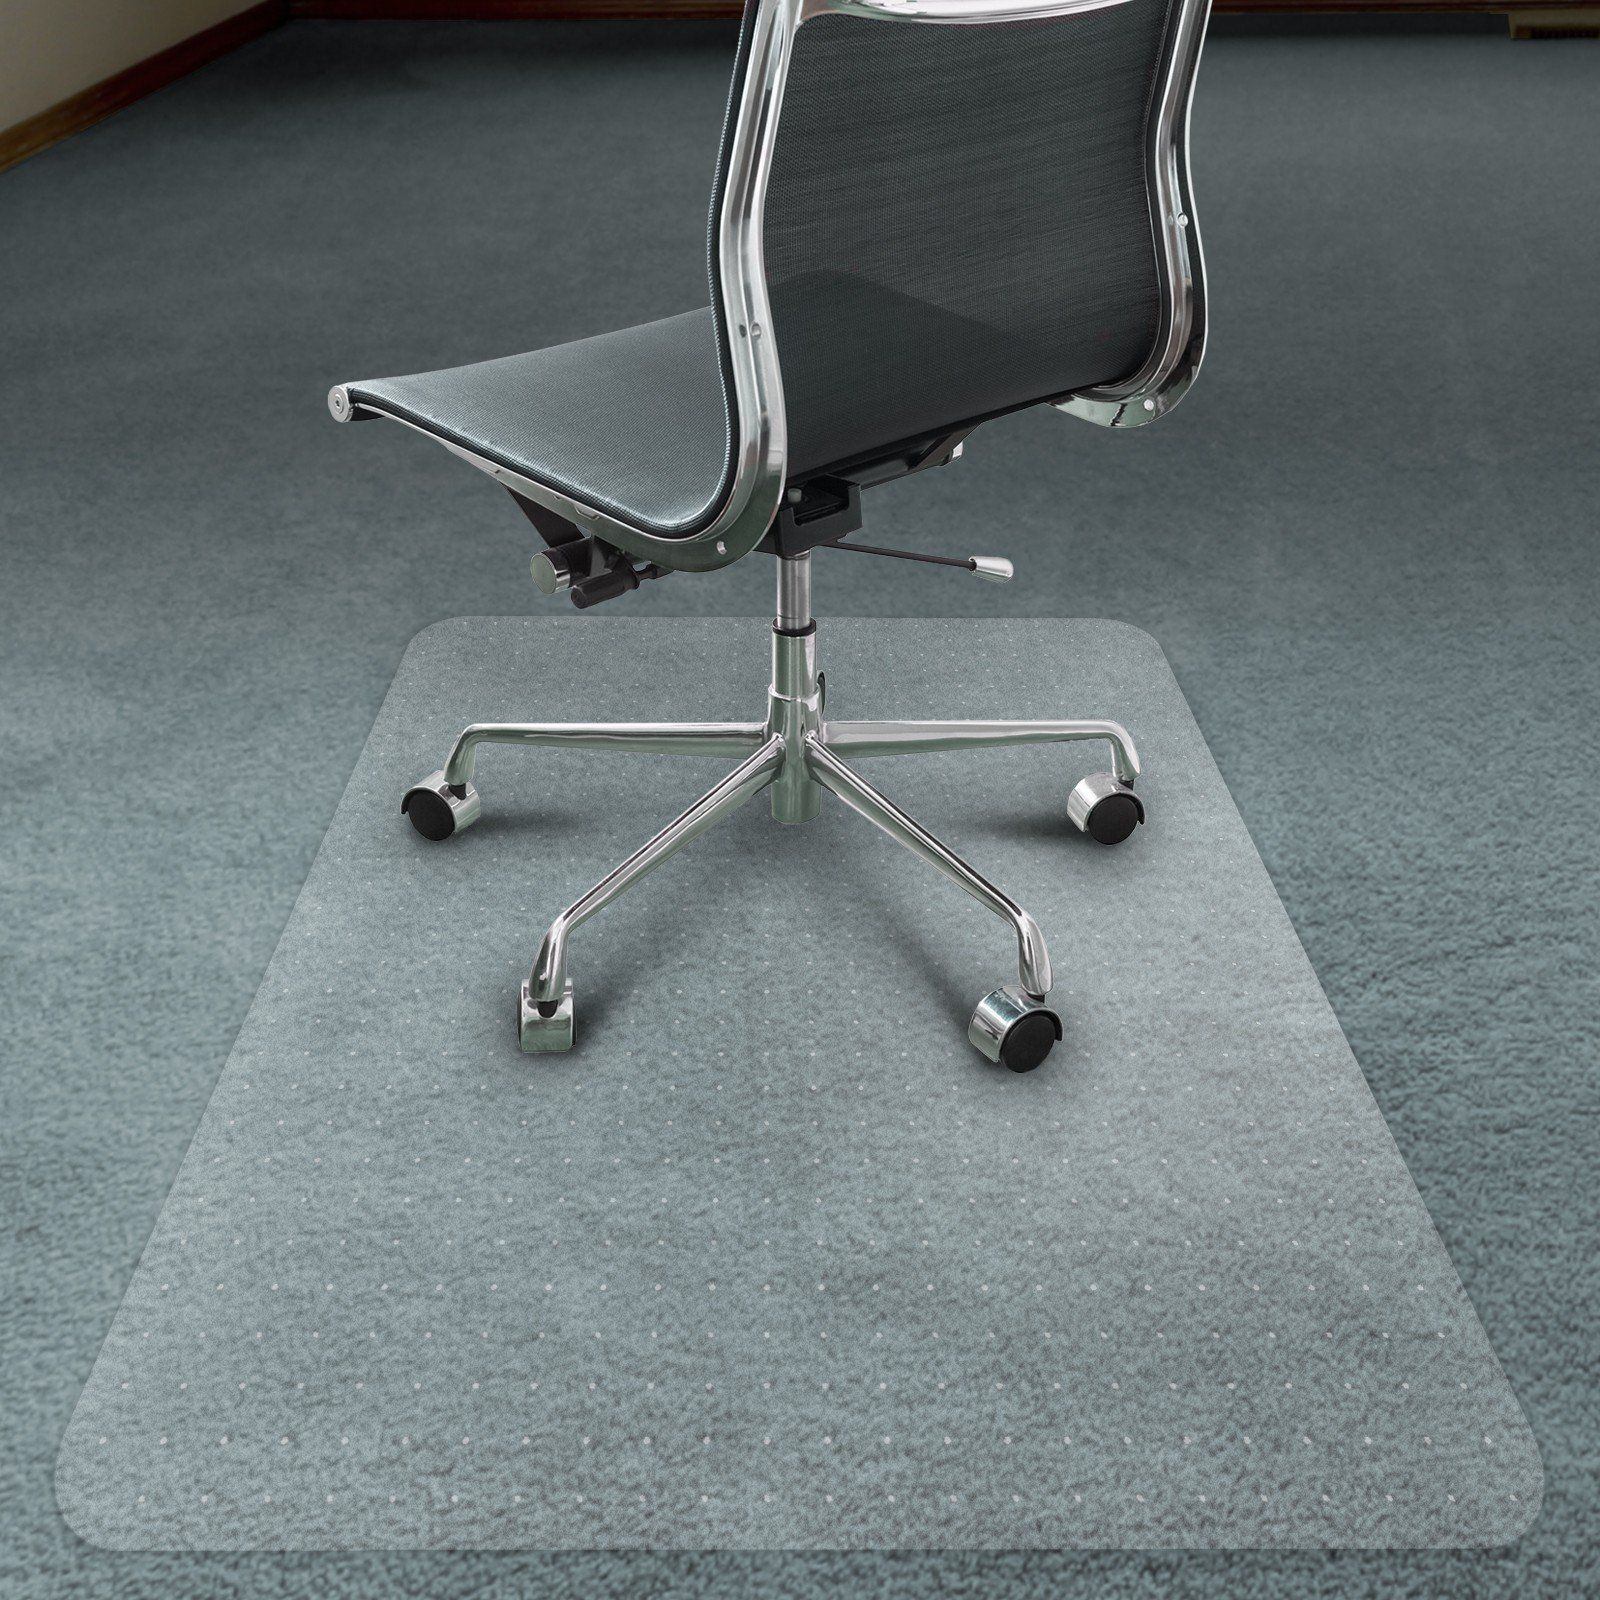 polycarbonate chair mat for carpets this strong and transparent